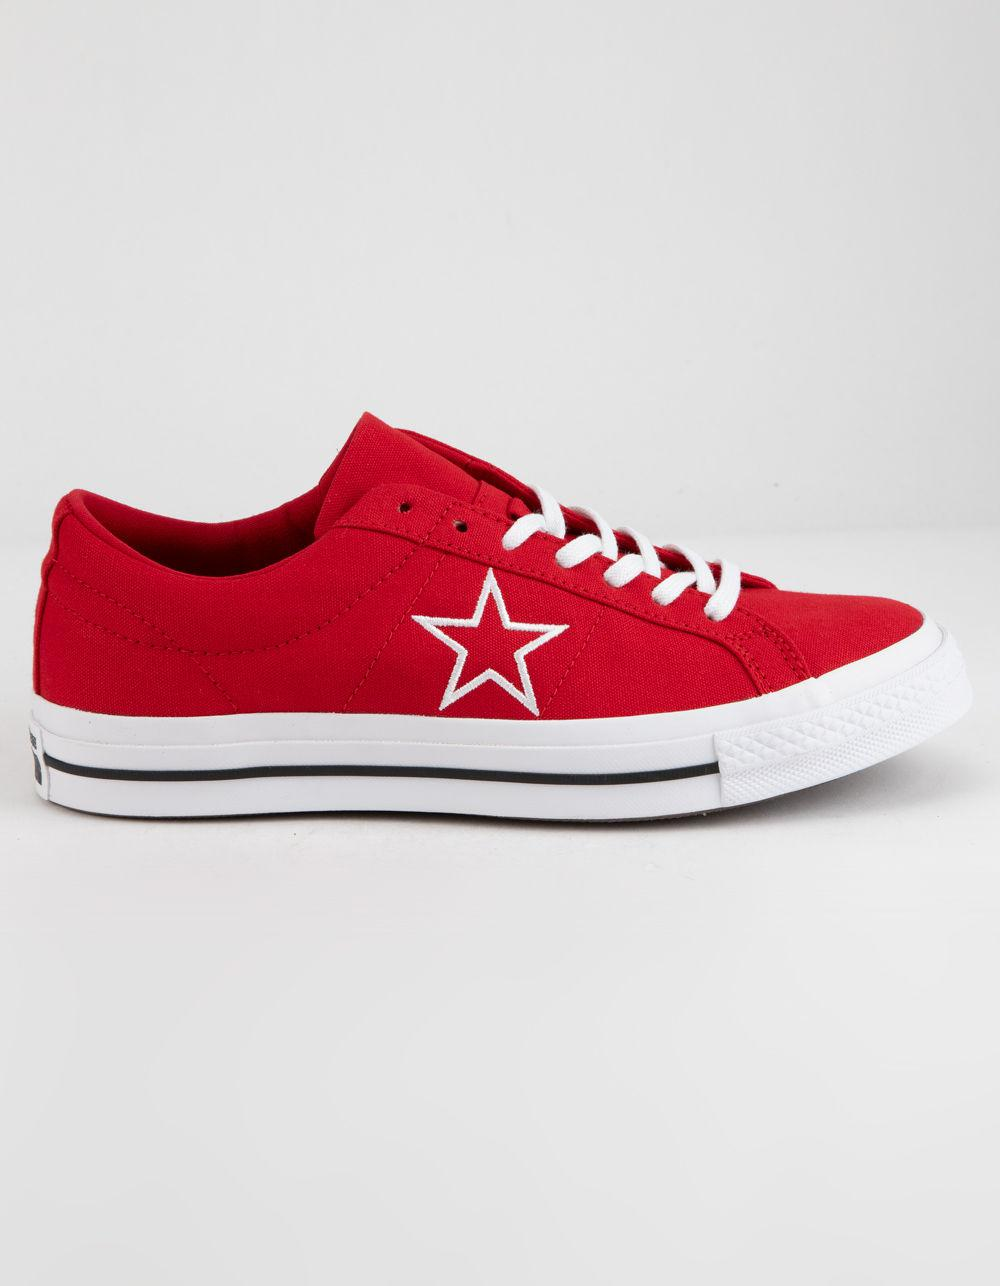 a1bac5761727 Lyst - Converse One Star Ox Enamel Red   White Low Top Shoes in Red